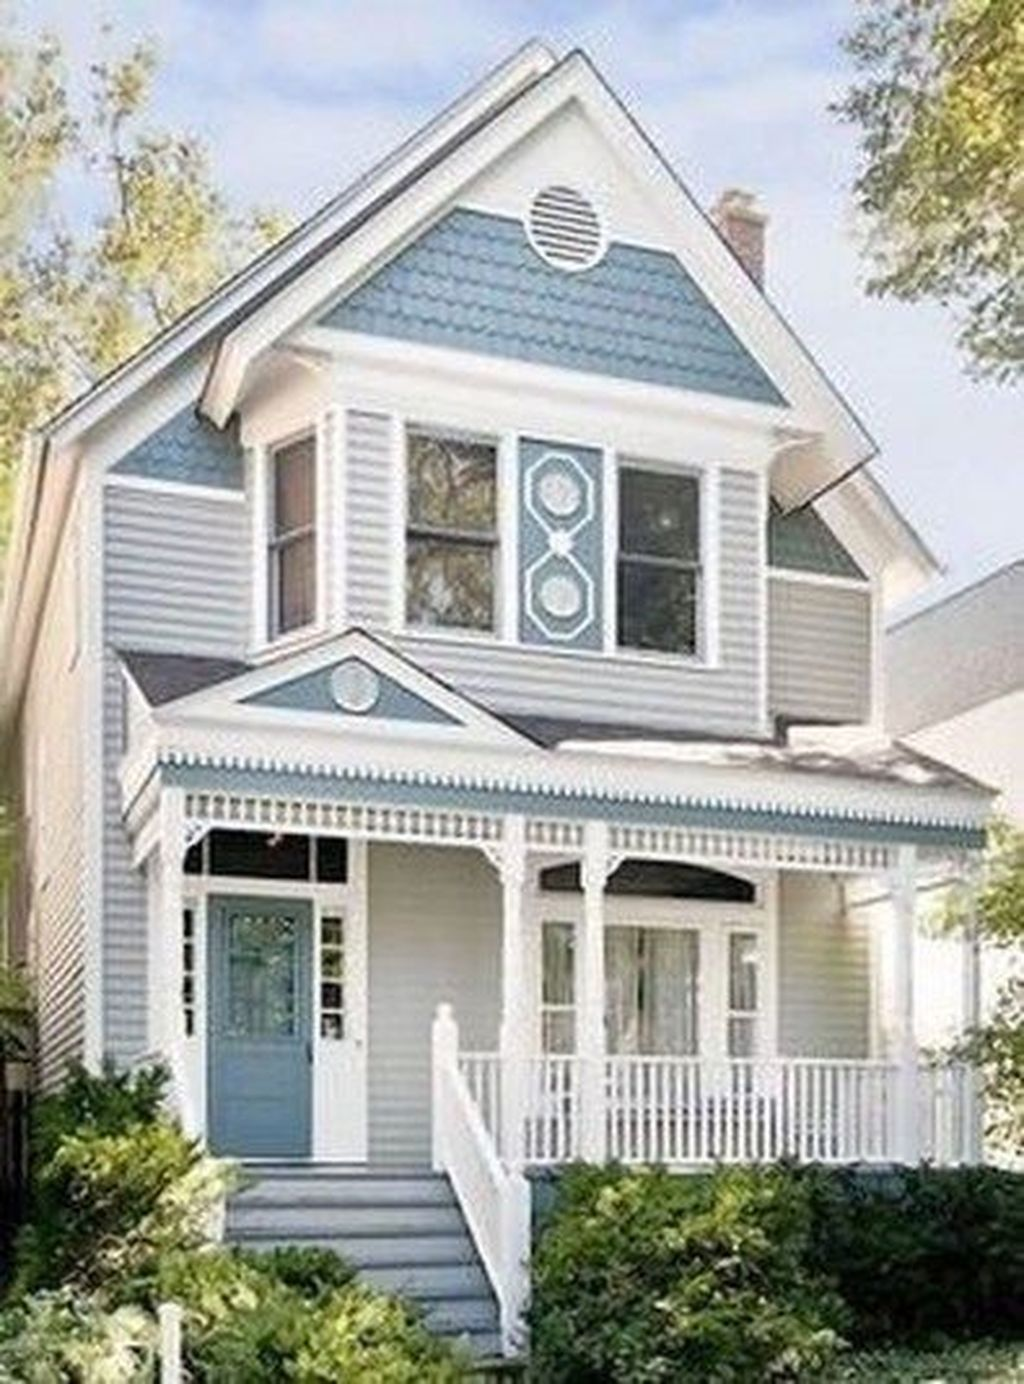 36 Stunning Victorian Farmhouse Exterior Design Ideas Housedcr Victorian Homes Exterior Cottage Exterior Colors Cottage Exterior